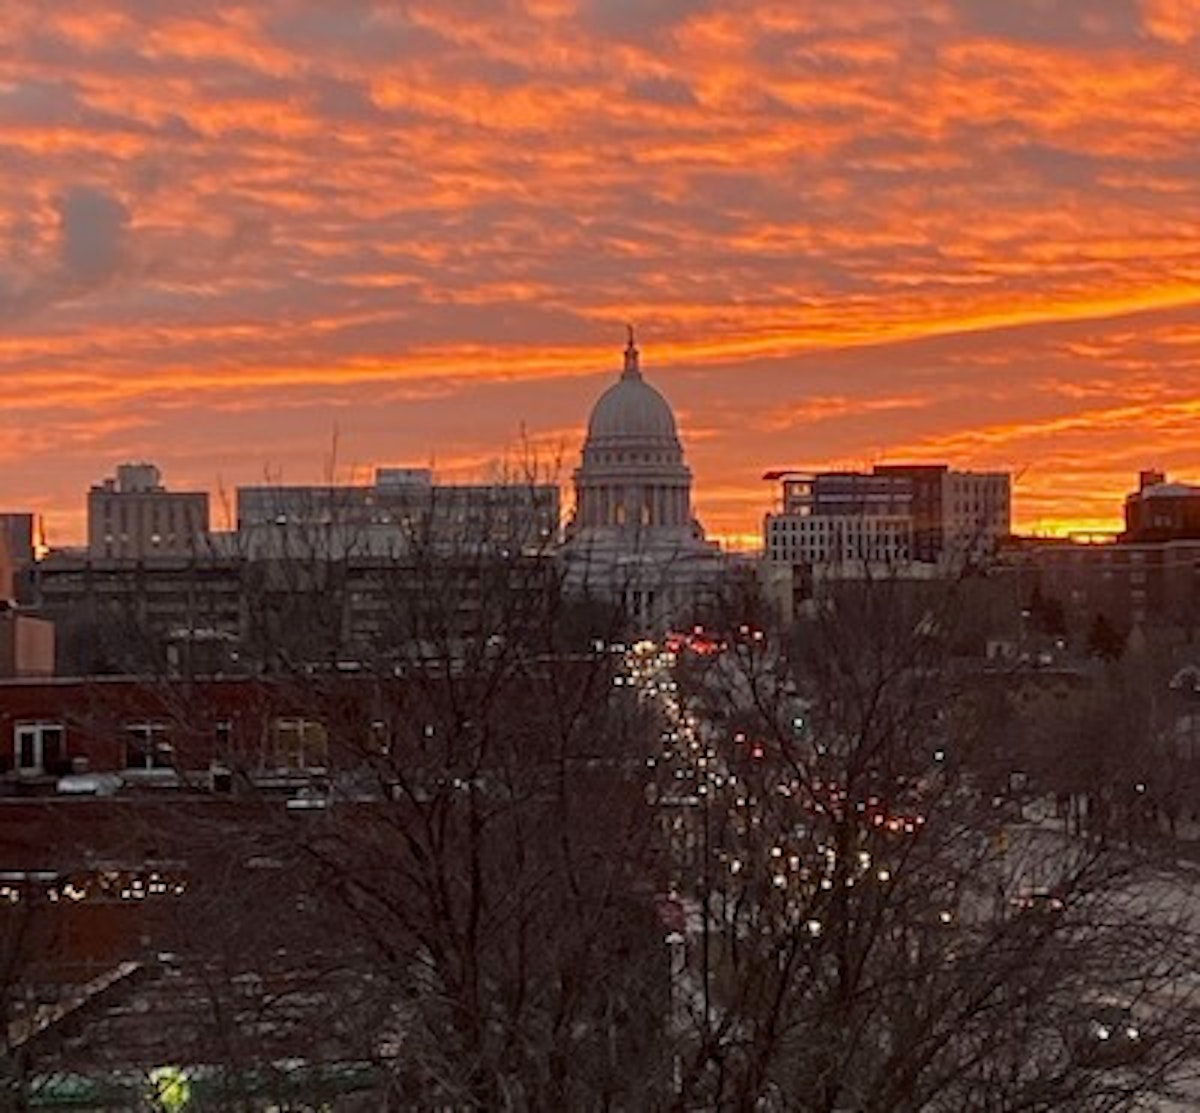 Madison as the sun set on 2019